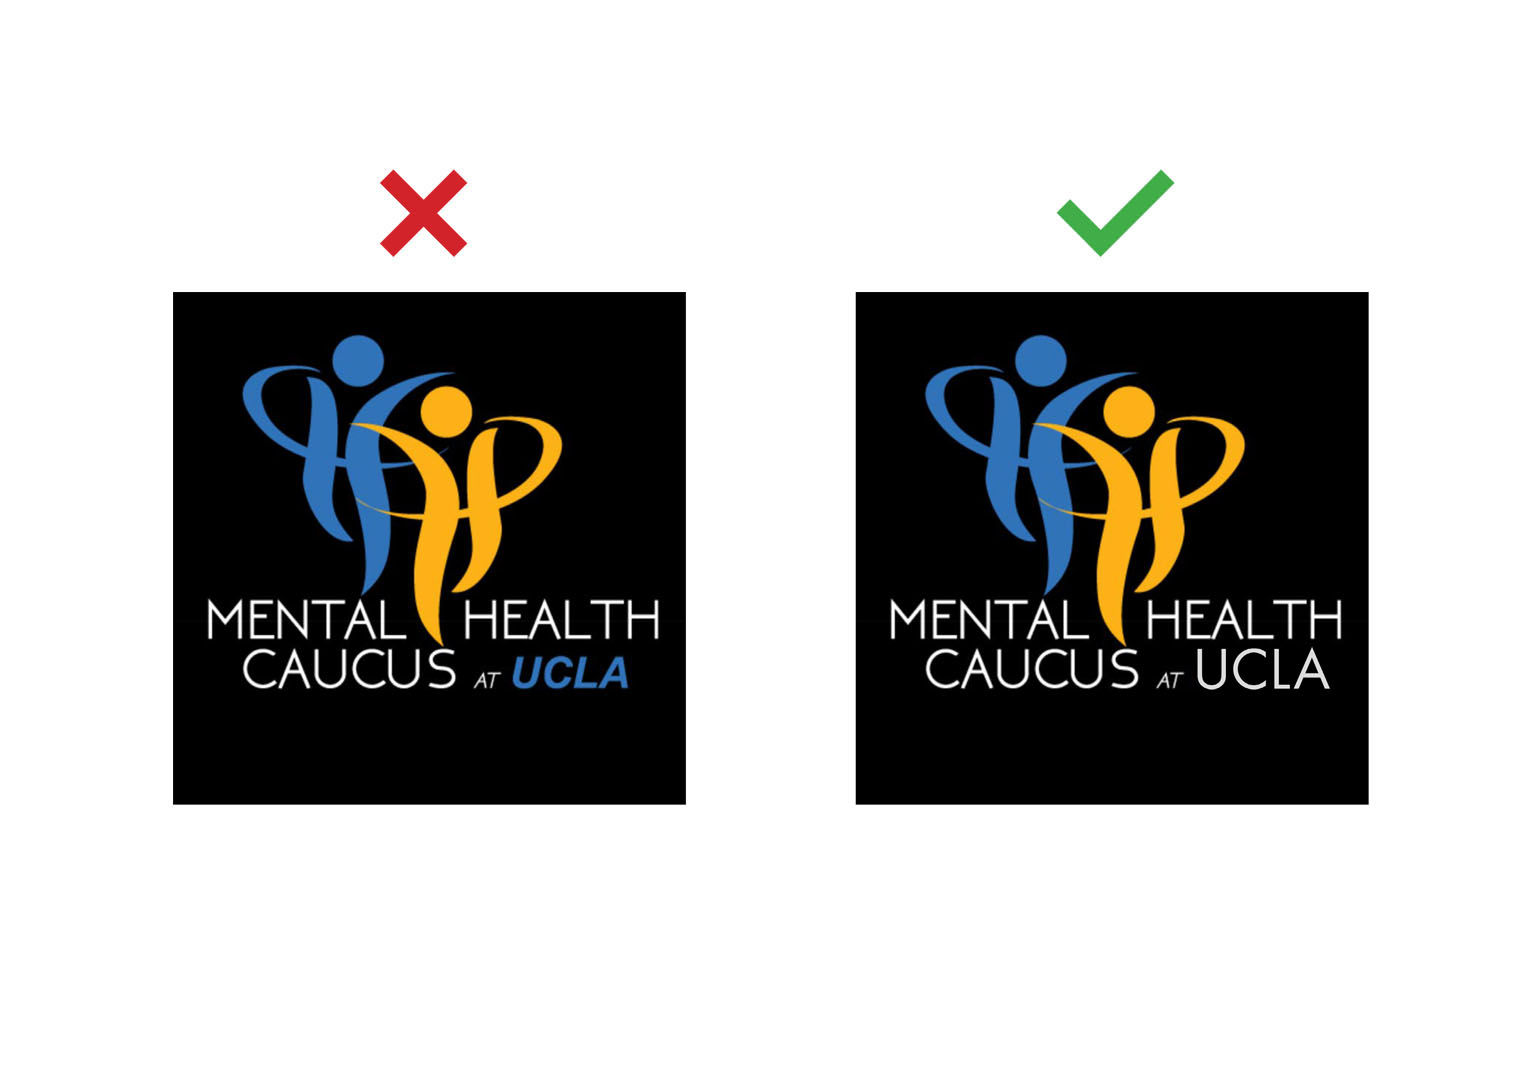 UCLA student group typesetting and logo example: Mental Health Caucus